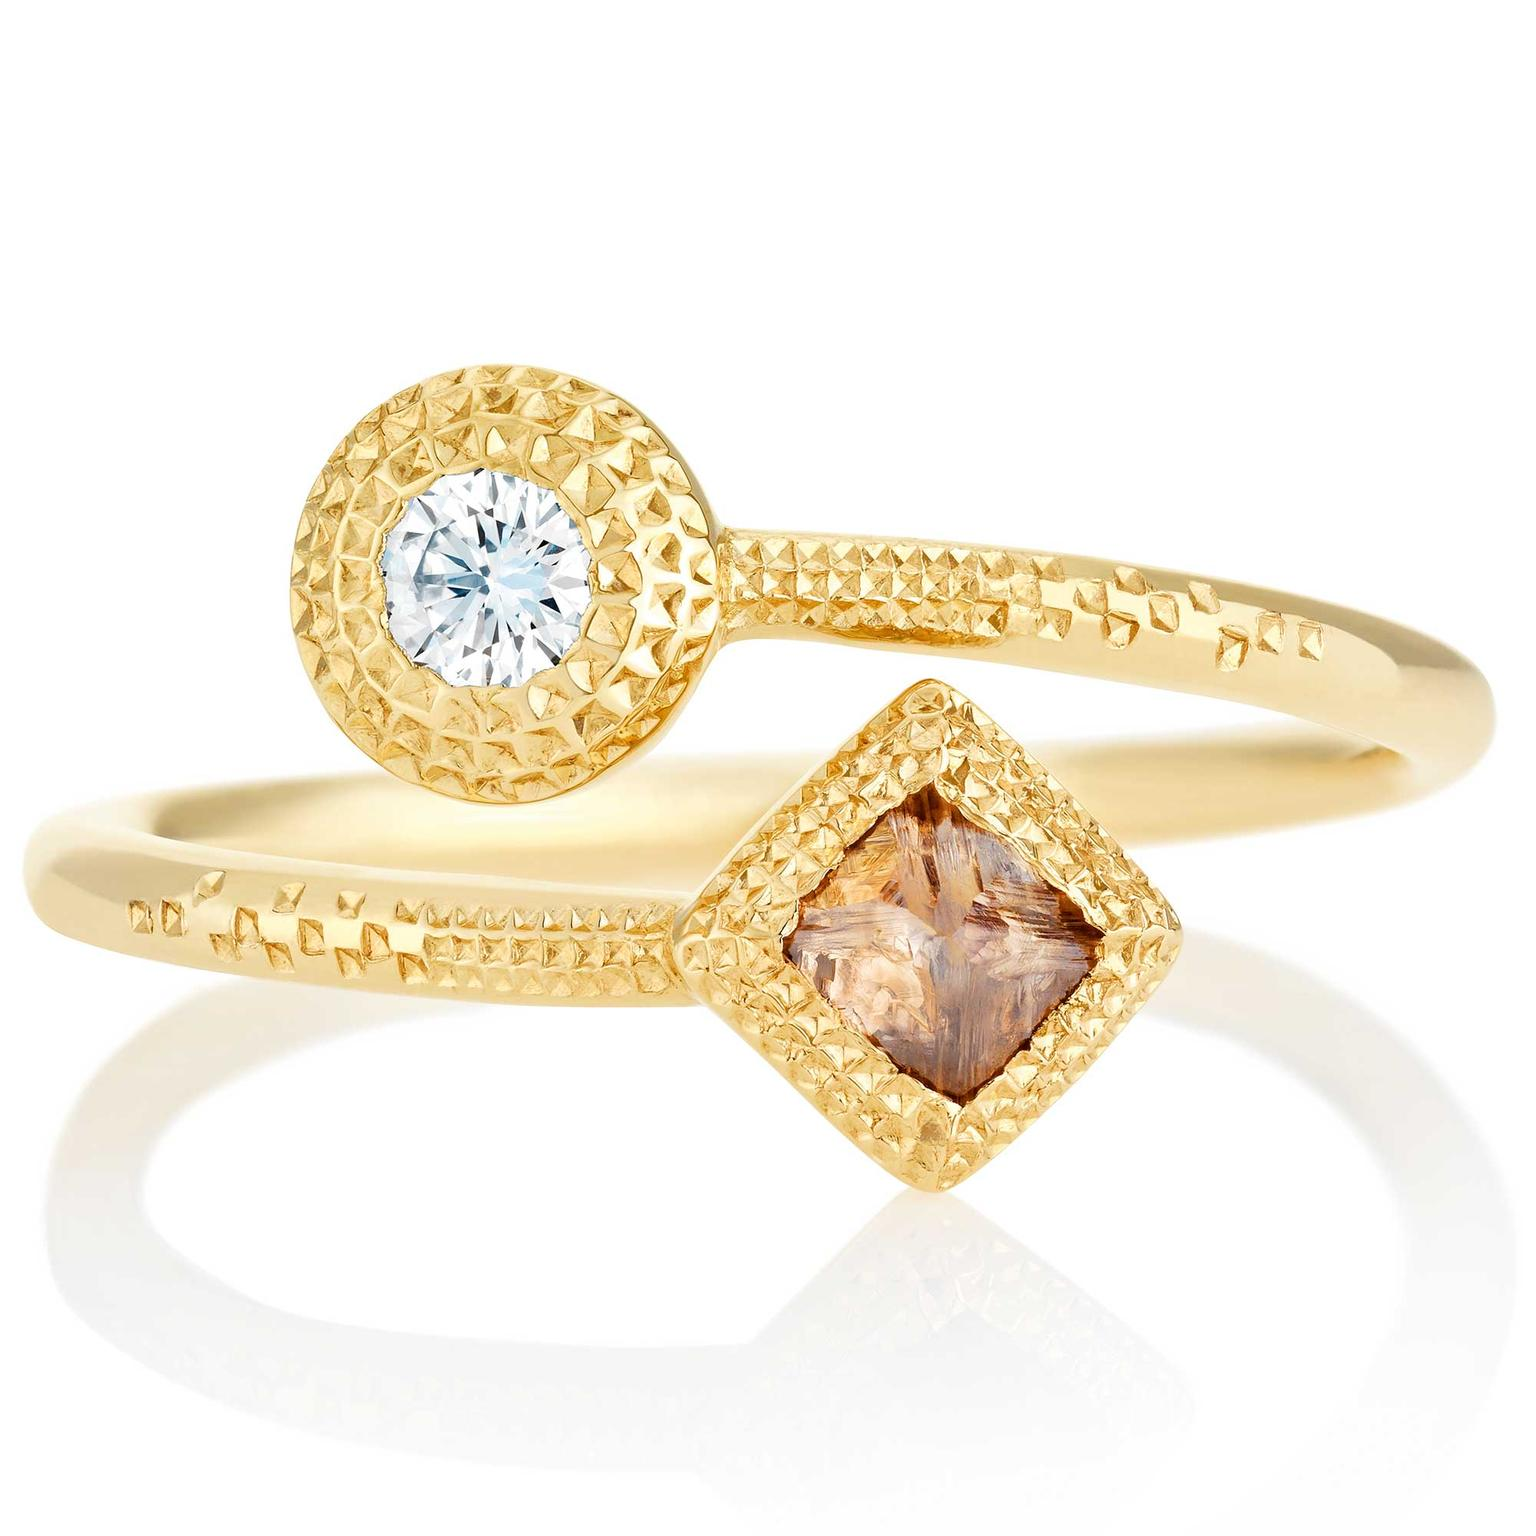 De Beers Talisman rough diamond ring in yellow gold